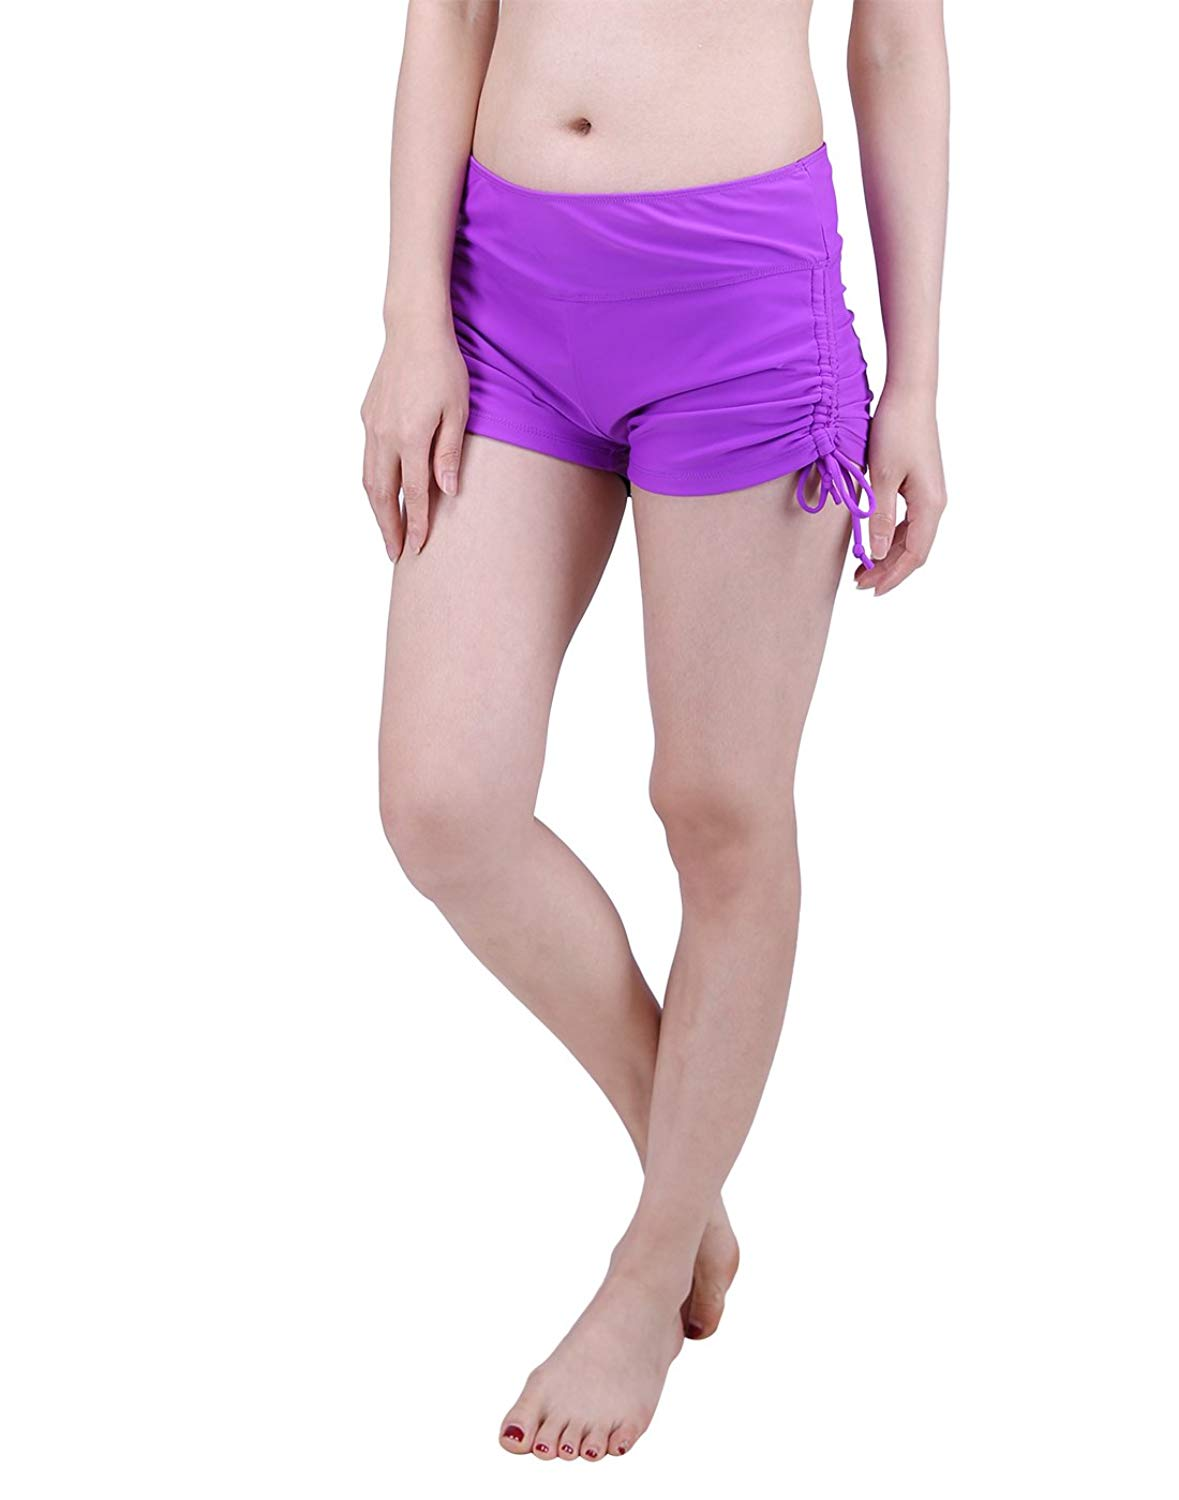 a6e3920800 Get Quotations · HDE Womens Swim Brief with Ties Mini Boy Short Bikini  Bottoms Swimsuit Separates